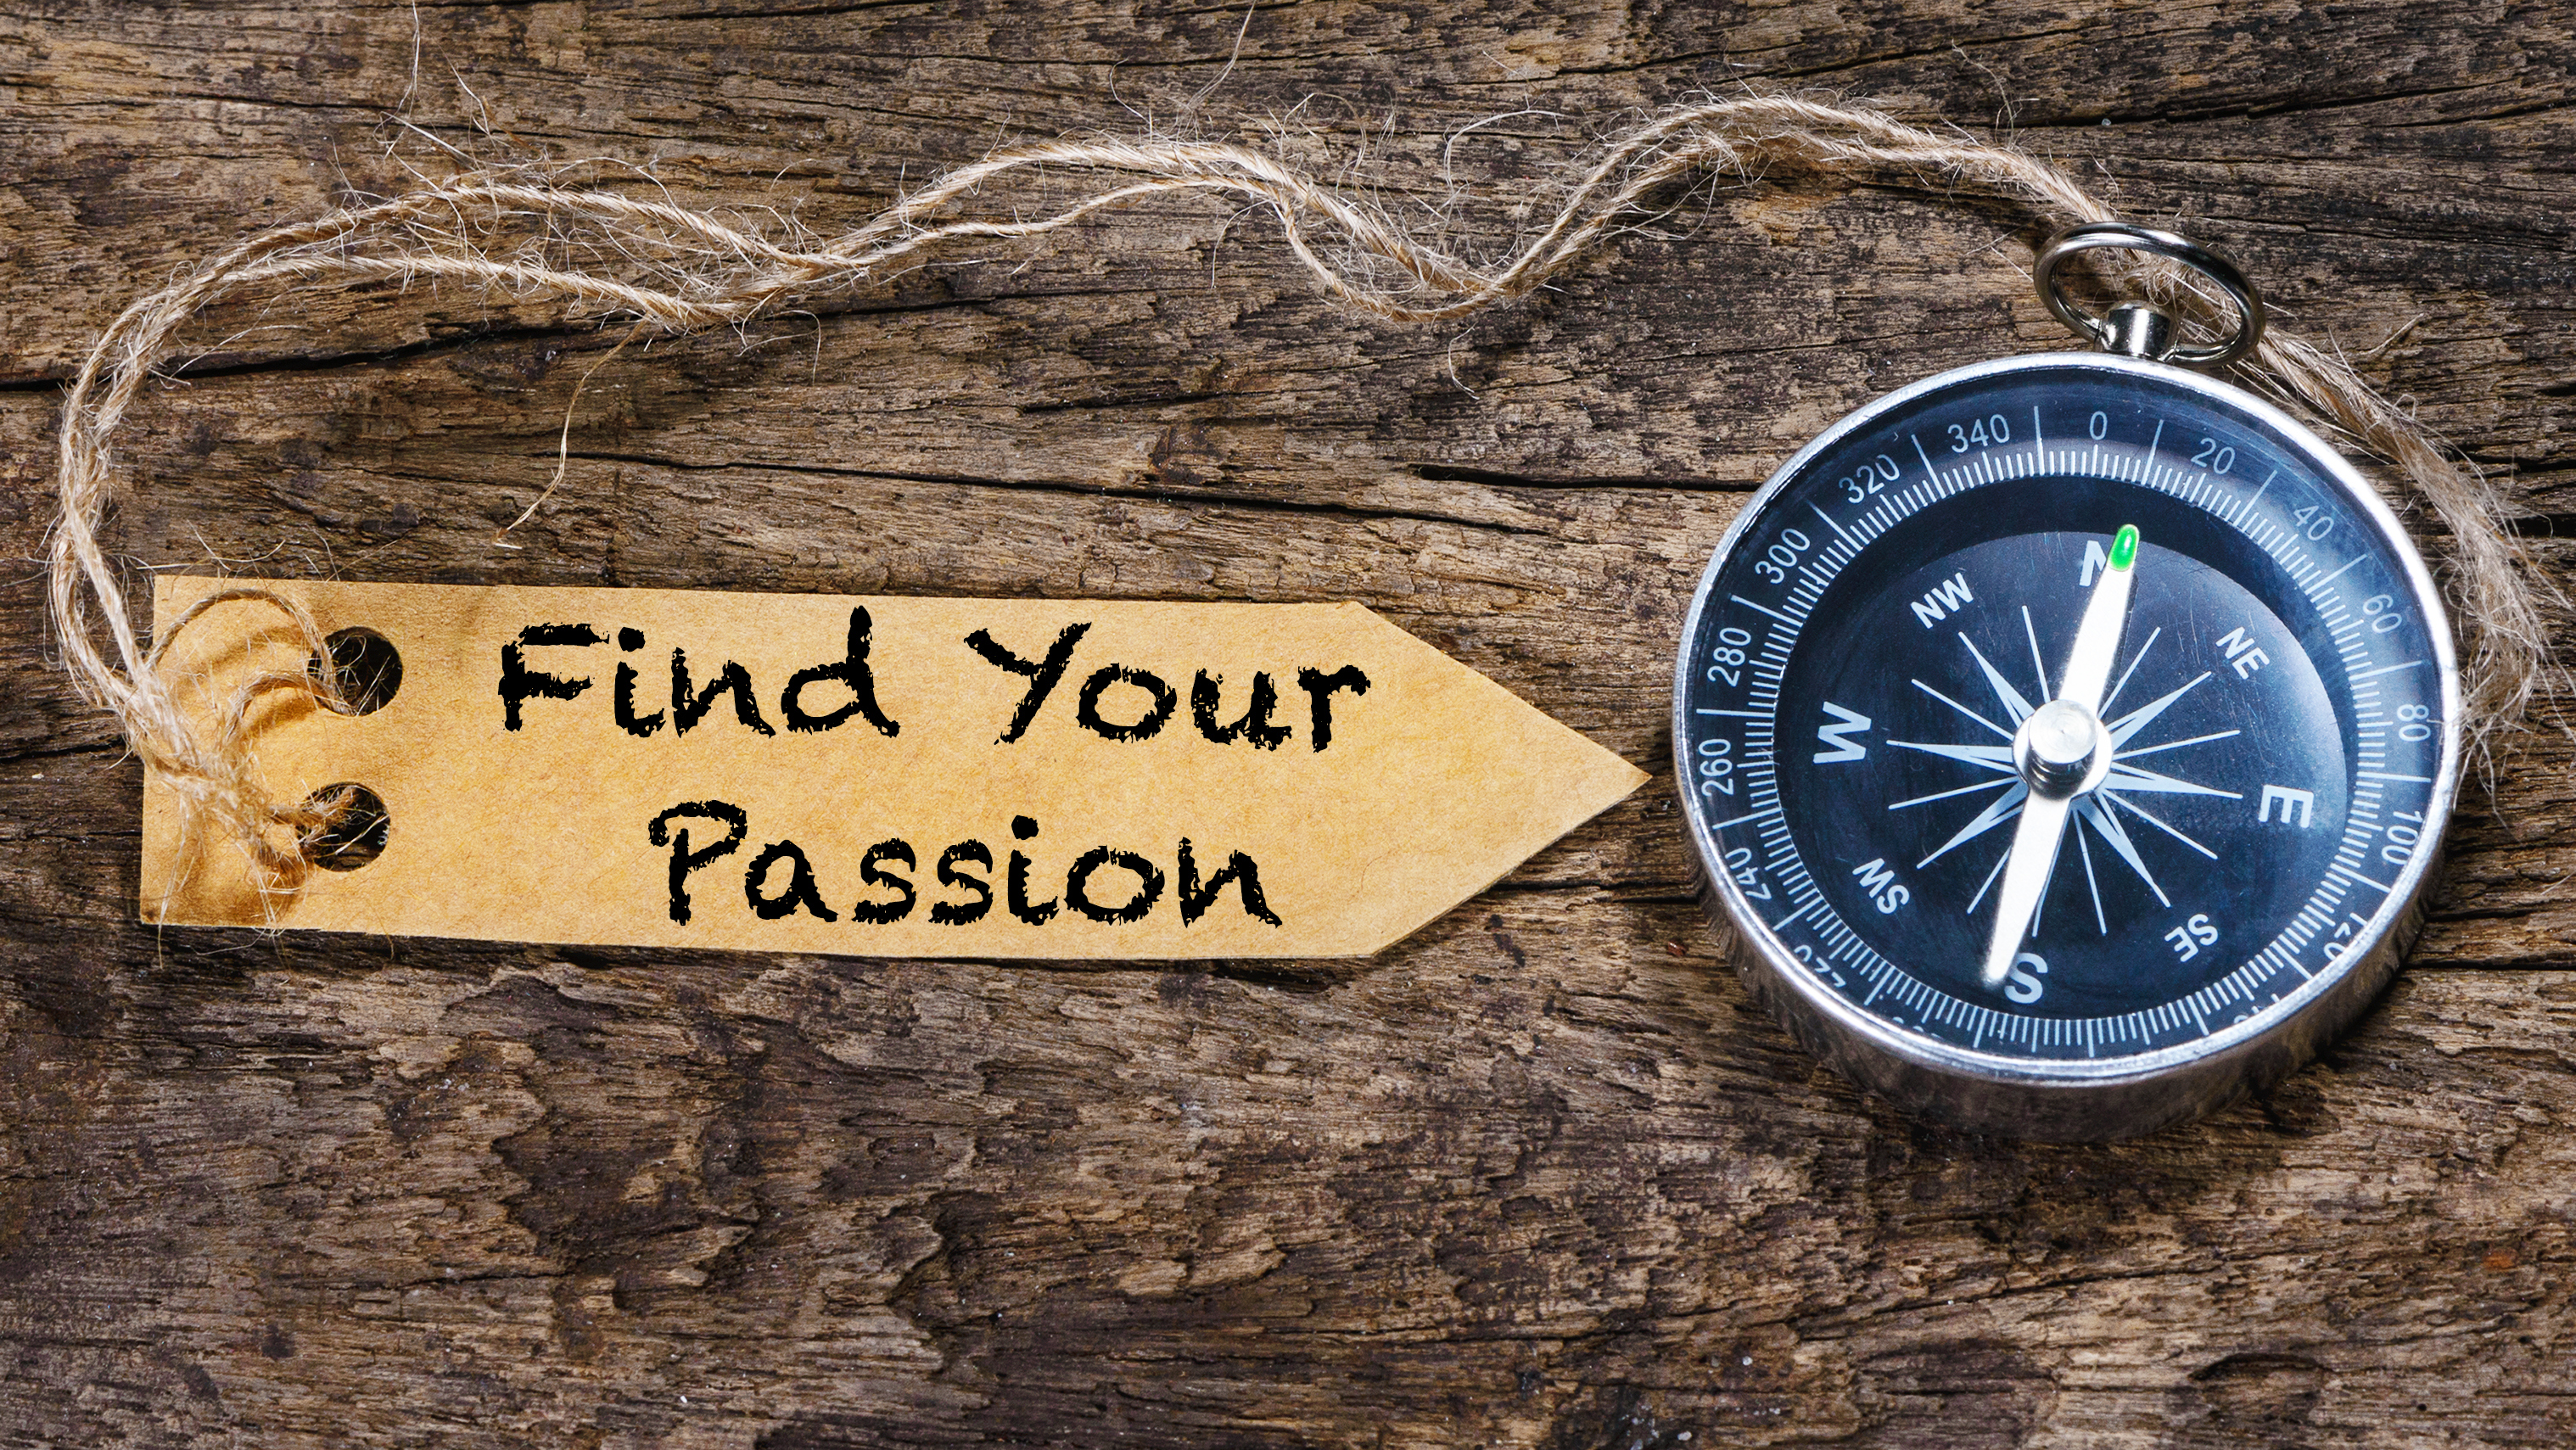 study: creating your passions more effective than finding them